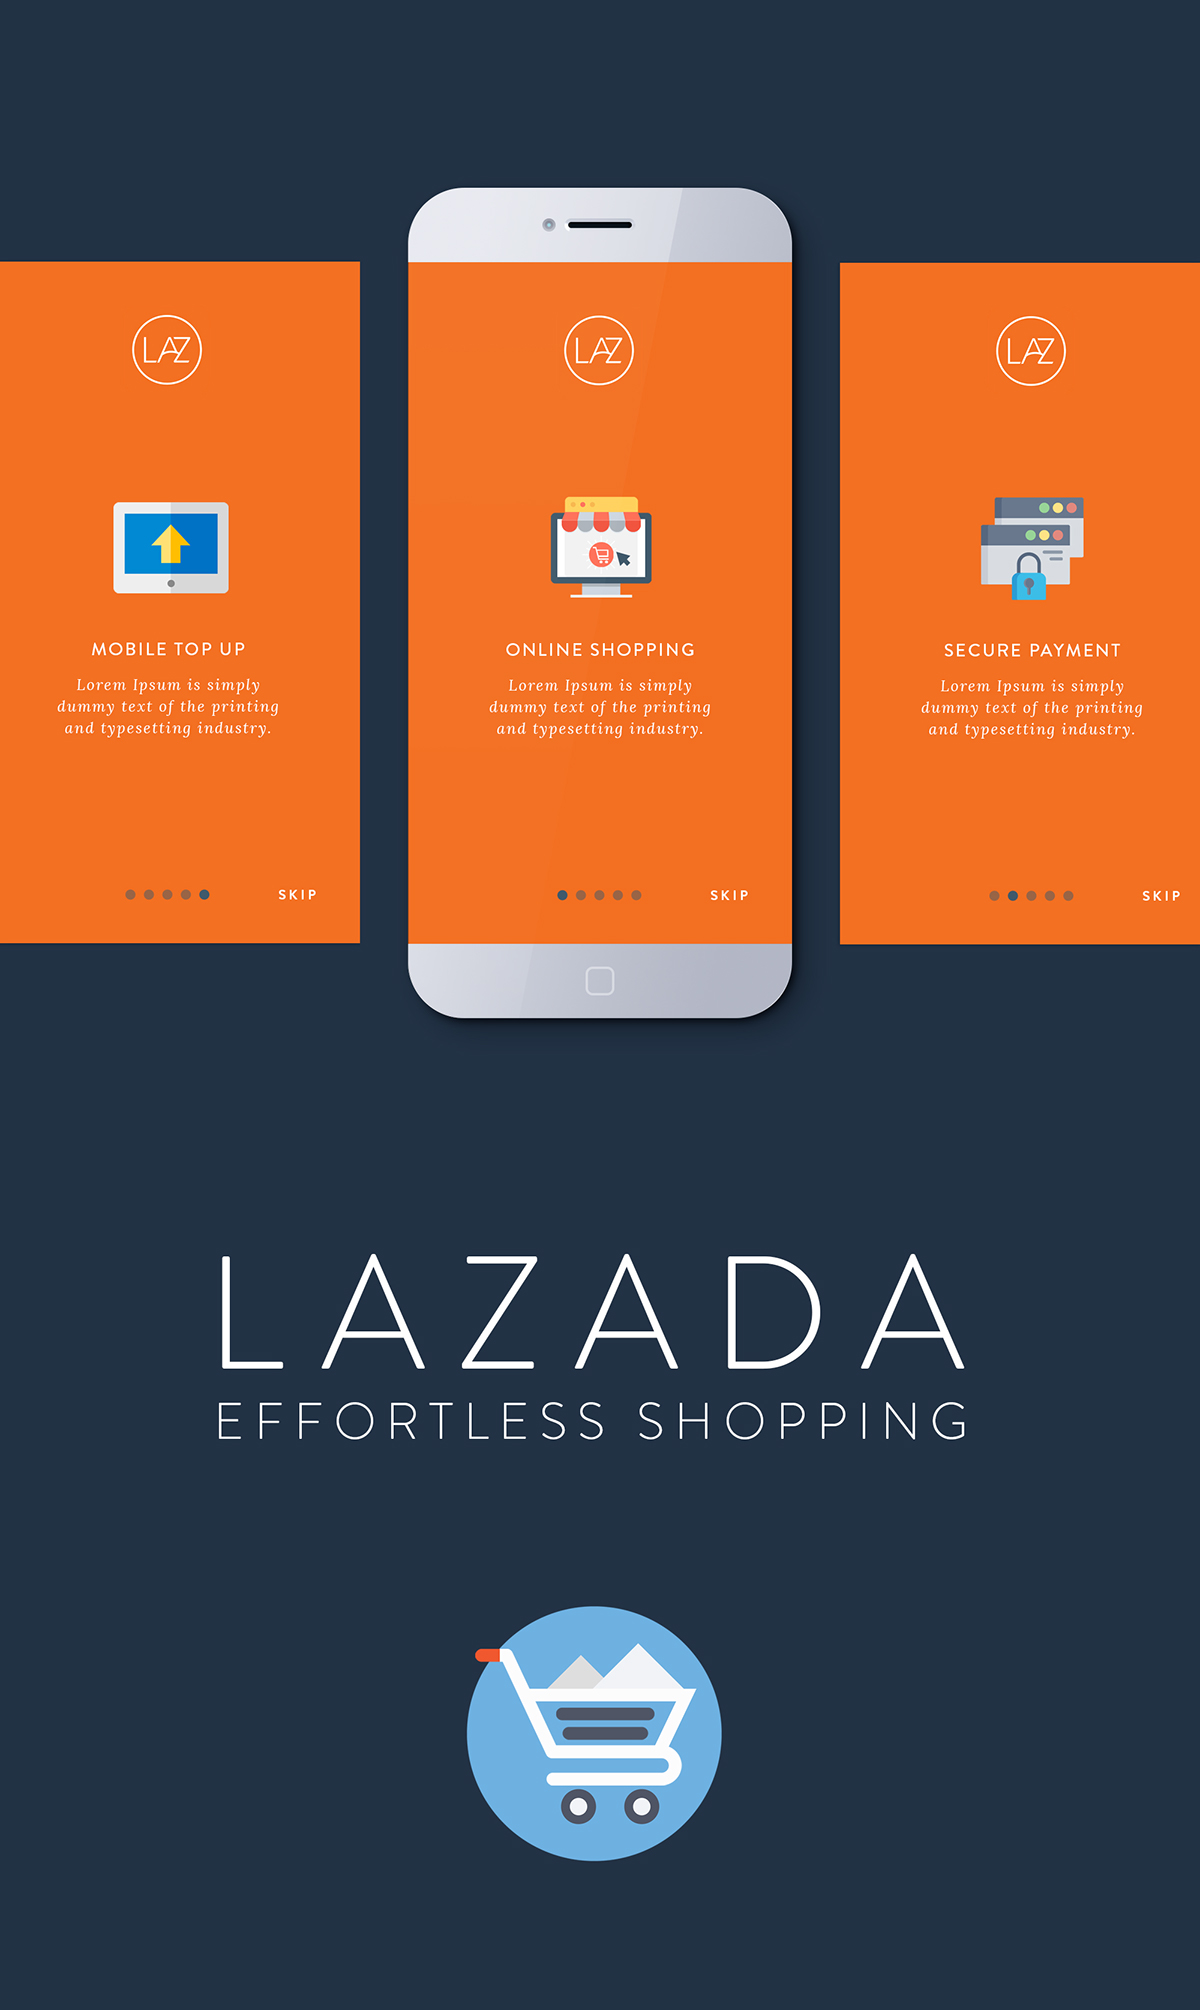 Lazada App Redesign - Unofficial on Behance